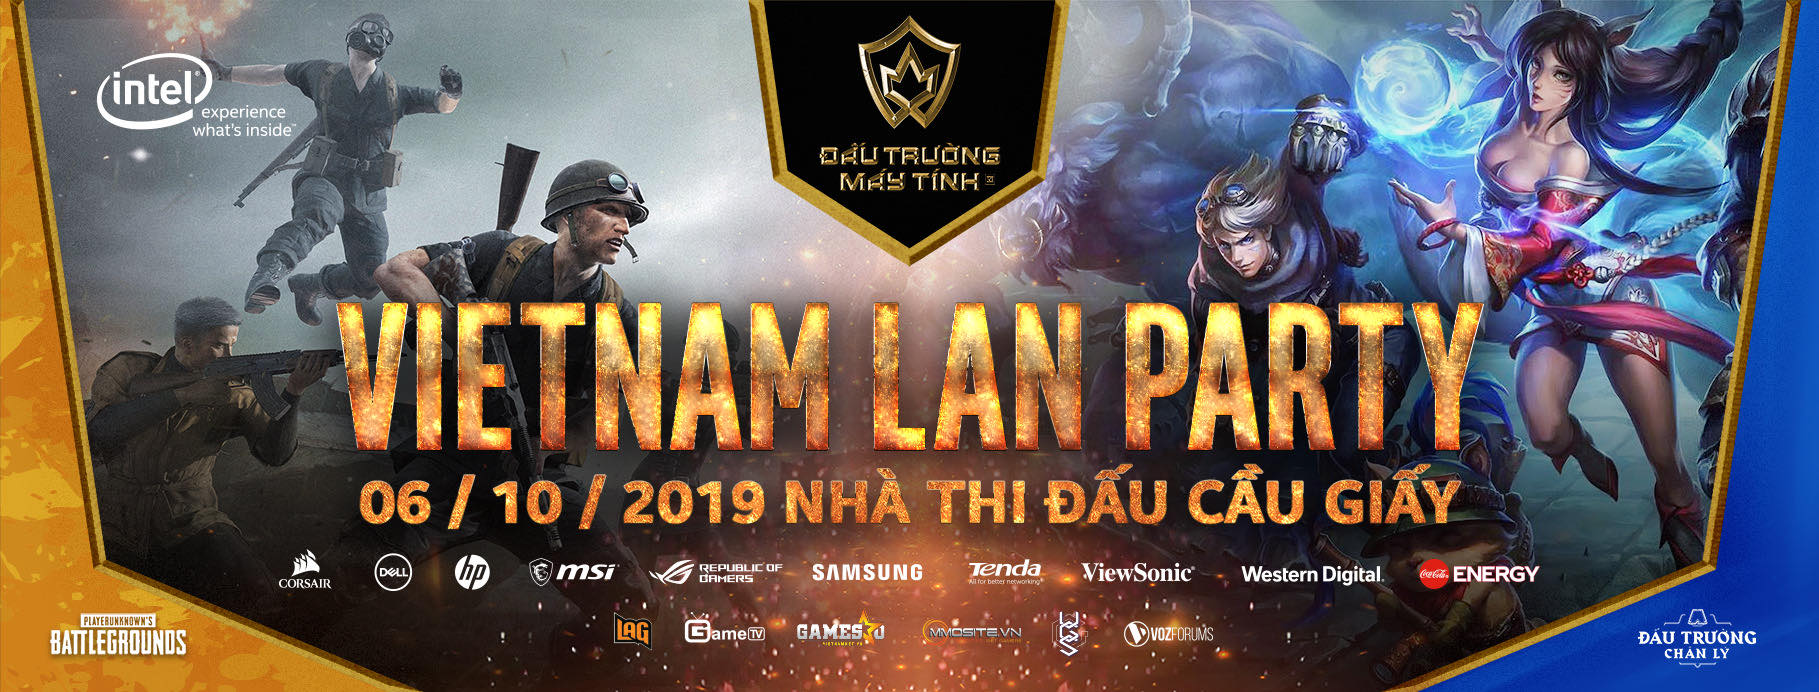 Vietnam Lan Party 2019 Season 6